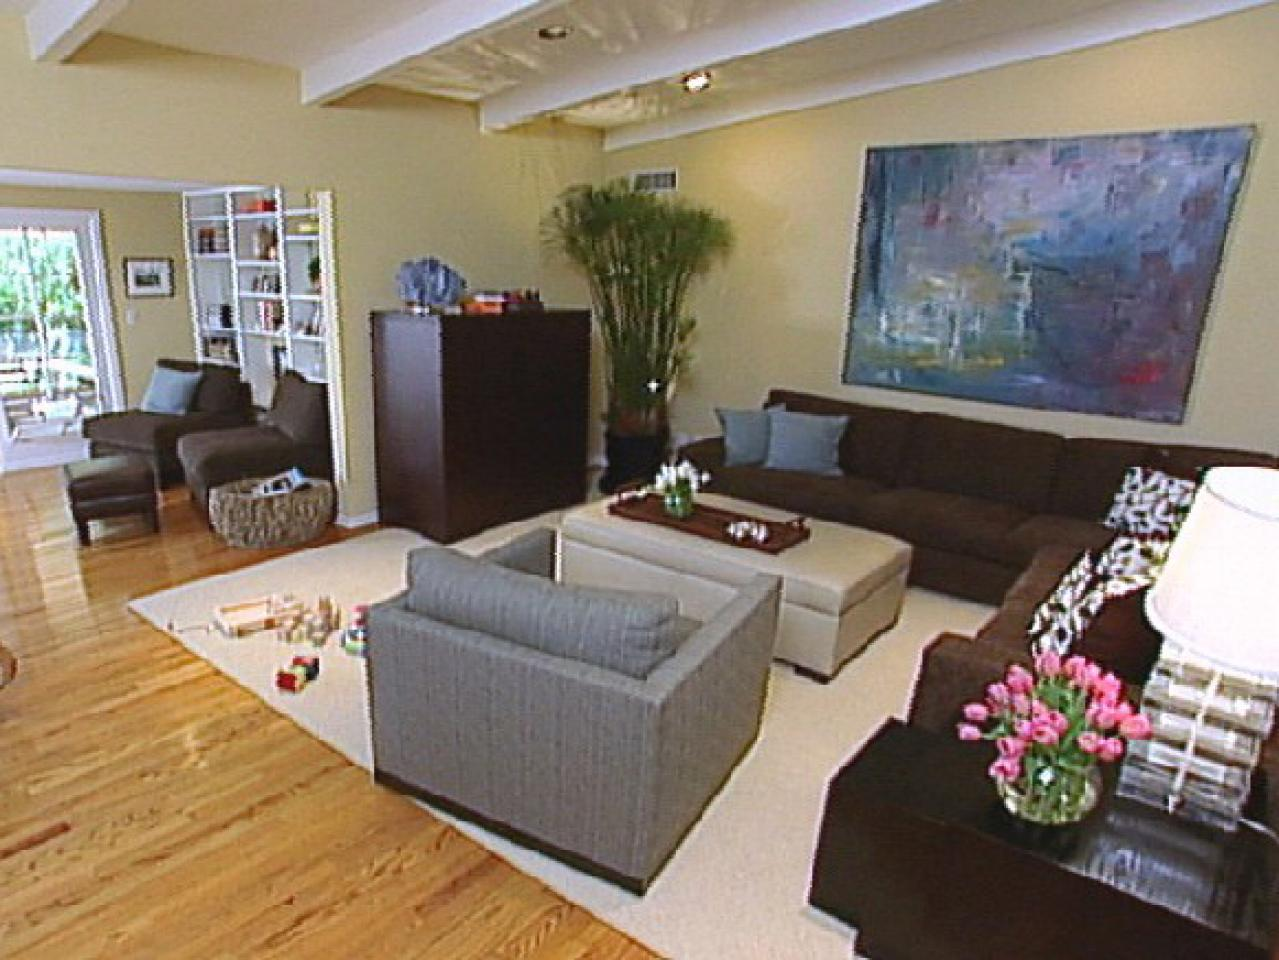 Hgtv gives the details on contemporary decor hgtv for Modern house decor